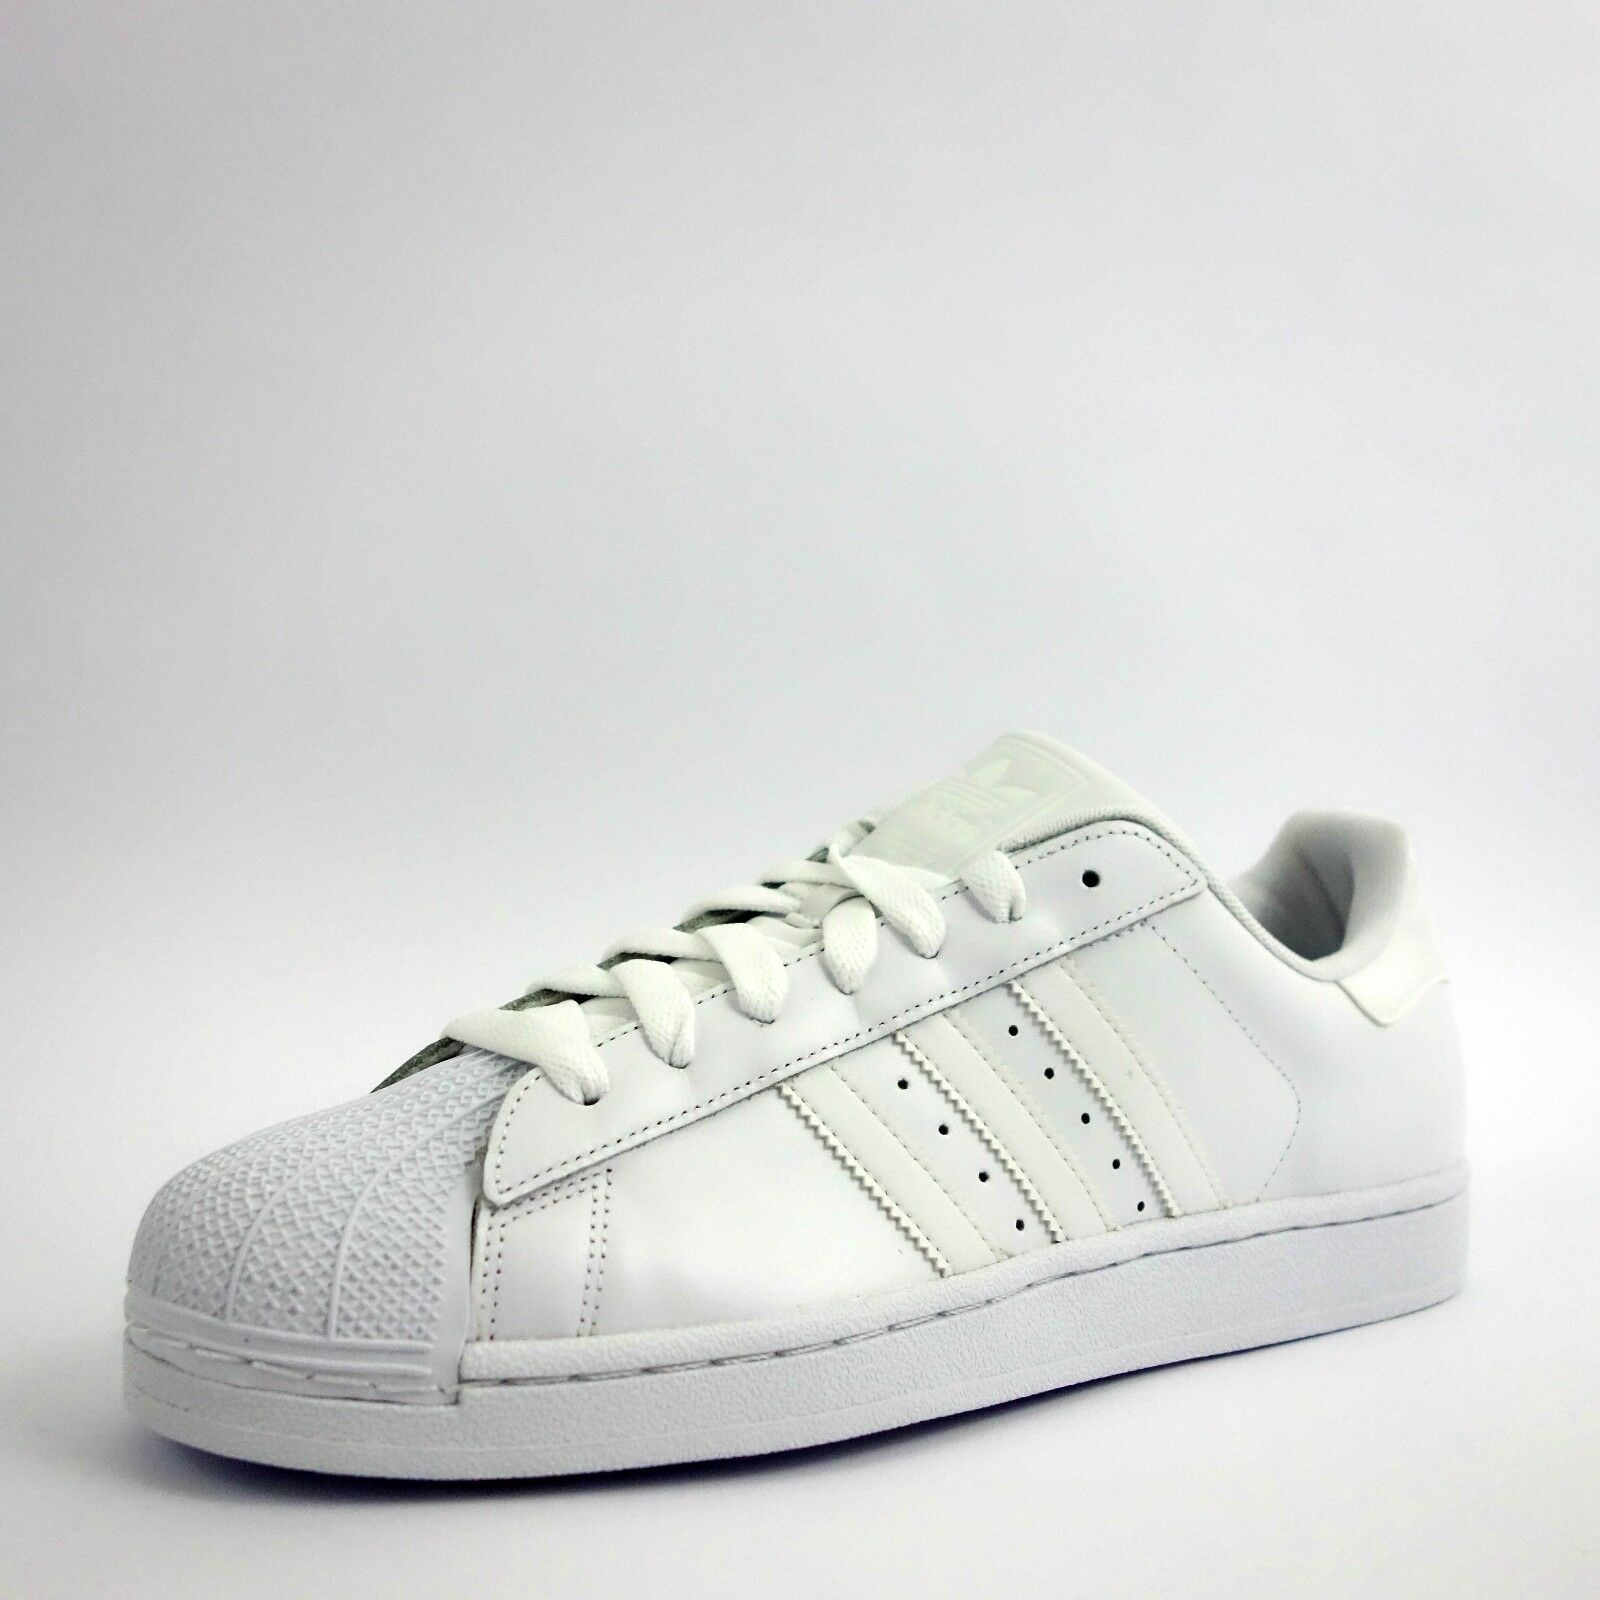 adidas Originals Superstar 2 II Mens Shell Toe Leather Trainers Shoes Sneakers